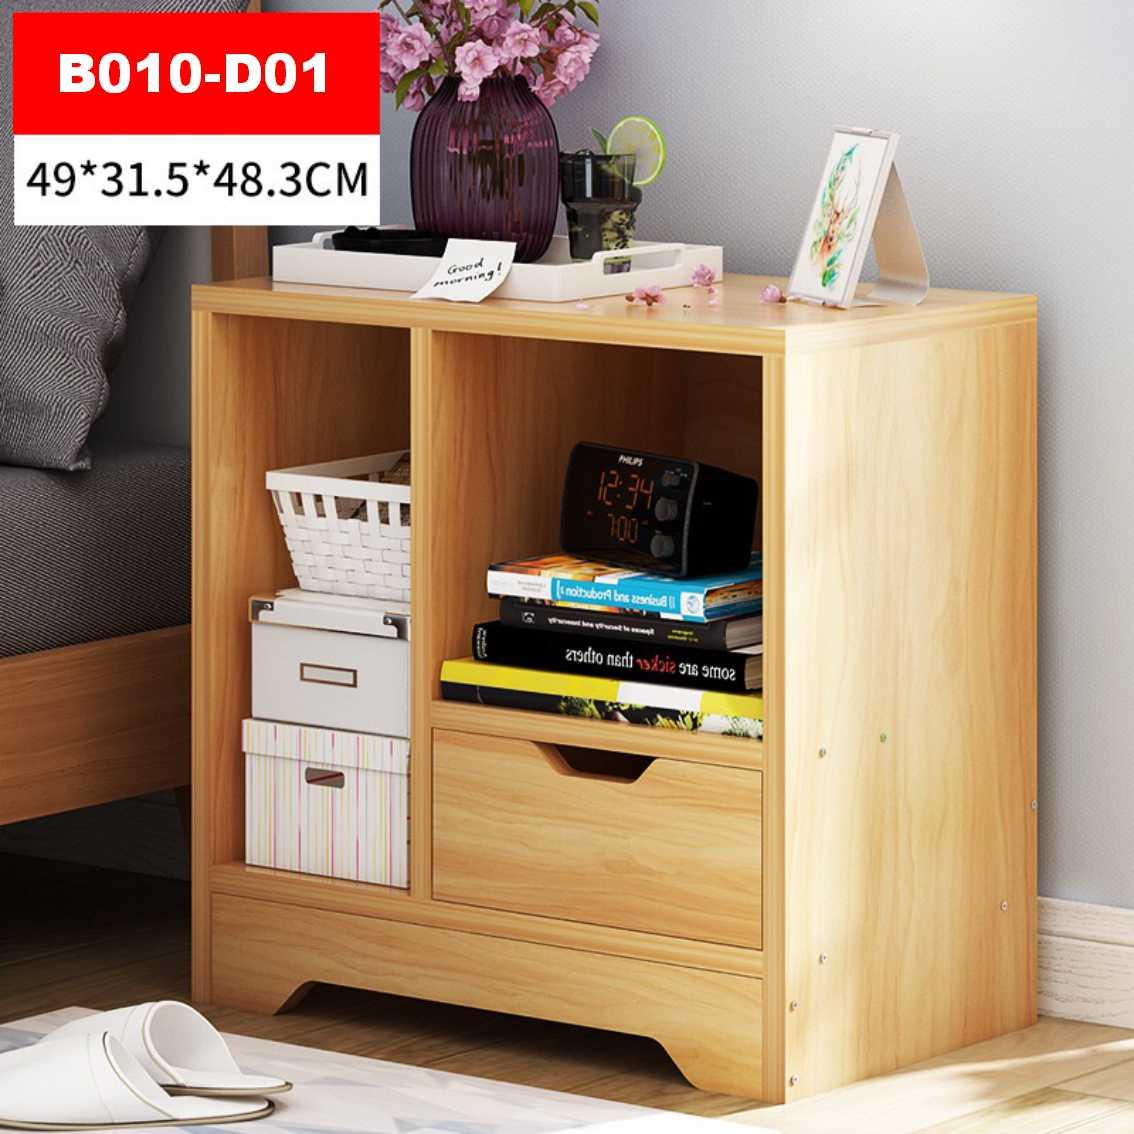 Bedside table/Cabinet/Drawer, Free delivery and installation